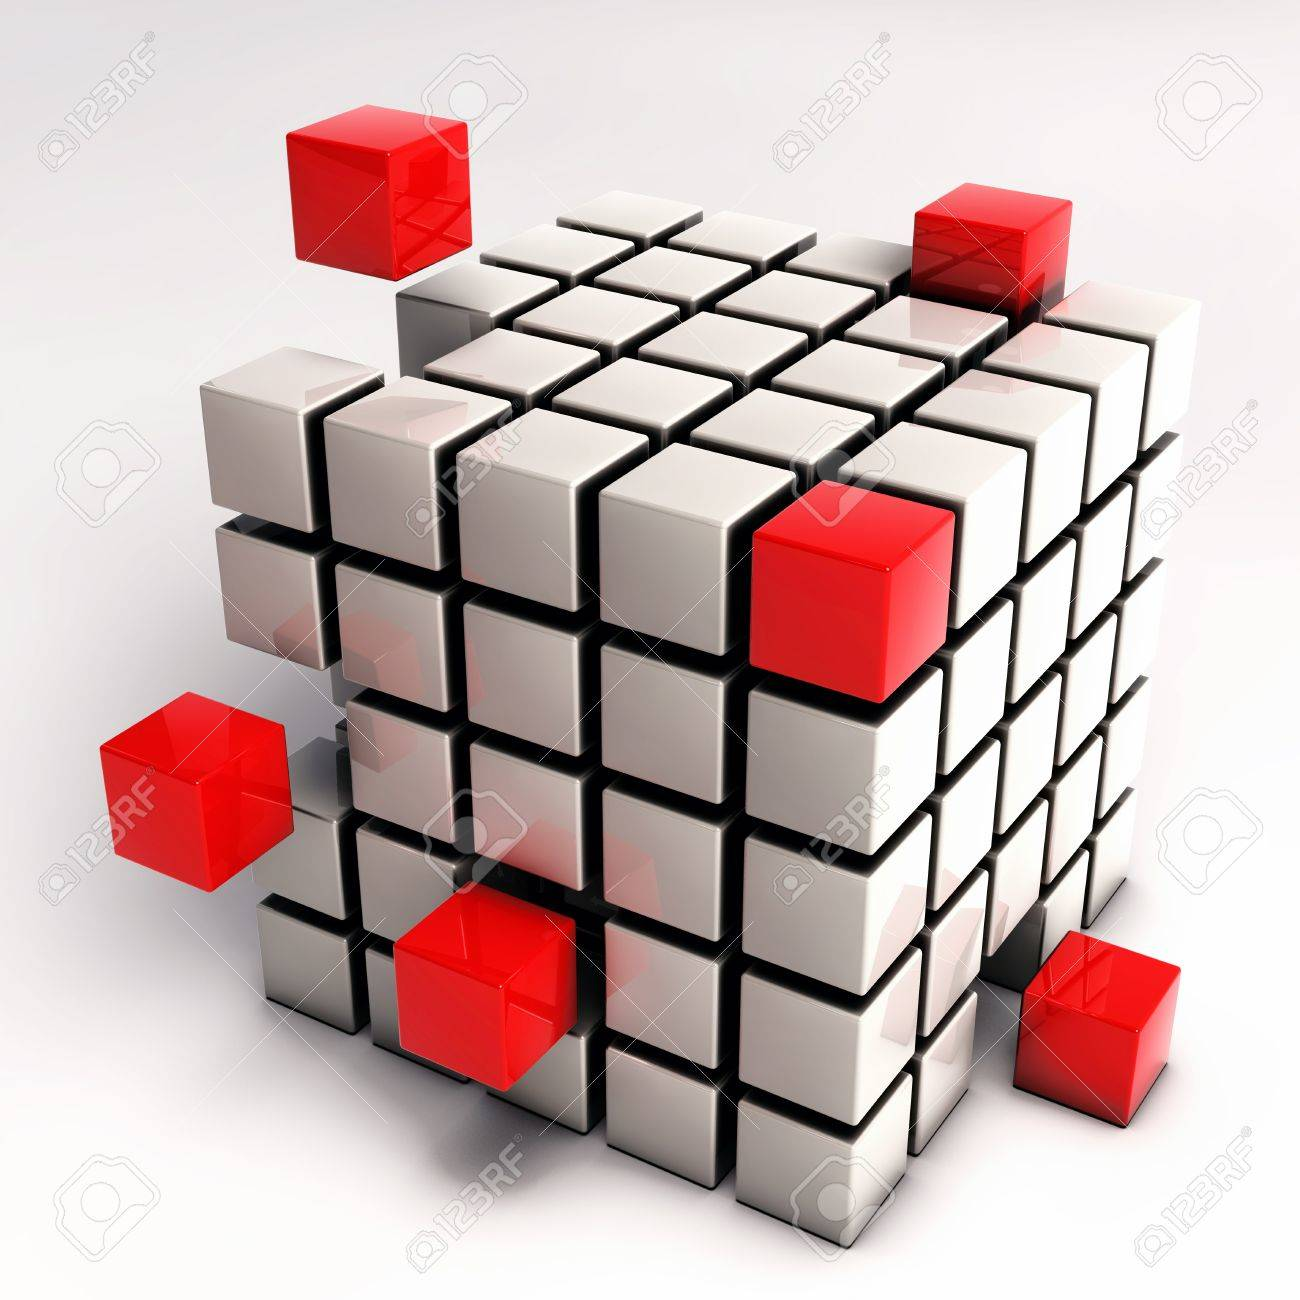 Abstract Cube Illustration - Red Cubes Separating from Single Cube Mesh isolated on white background Stock Photo - 17771093